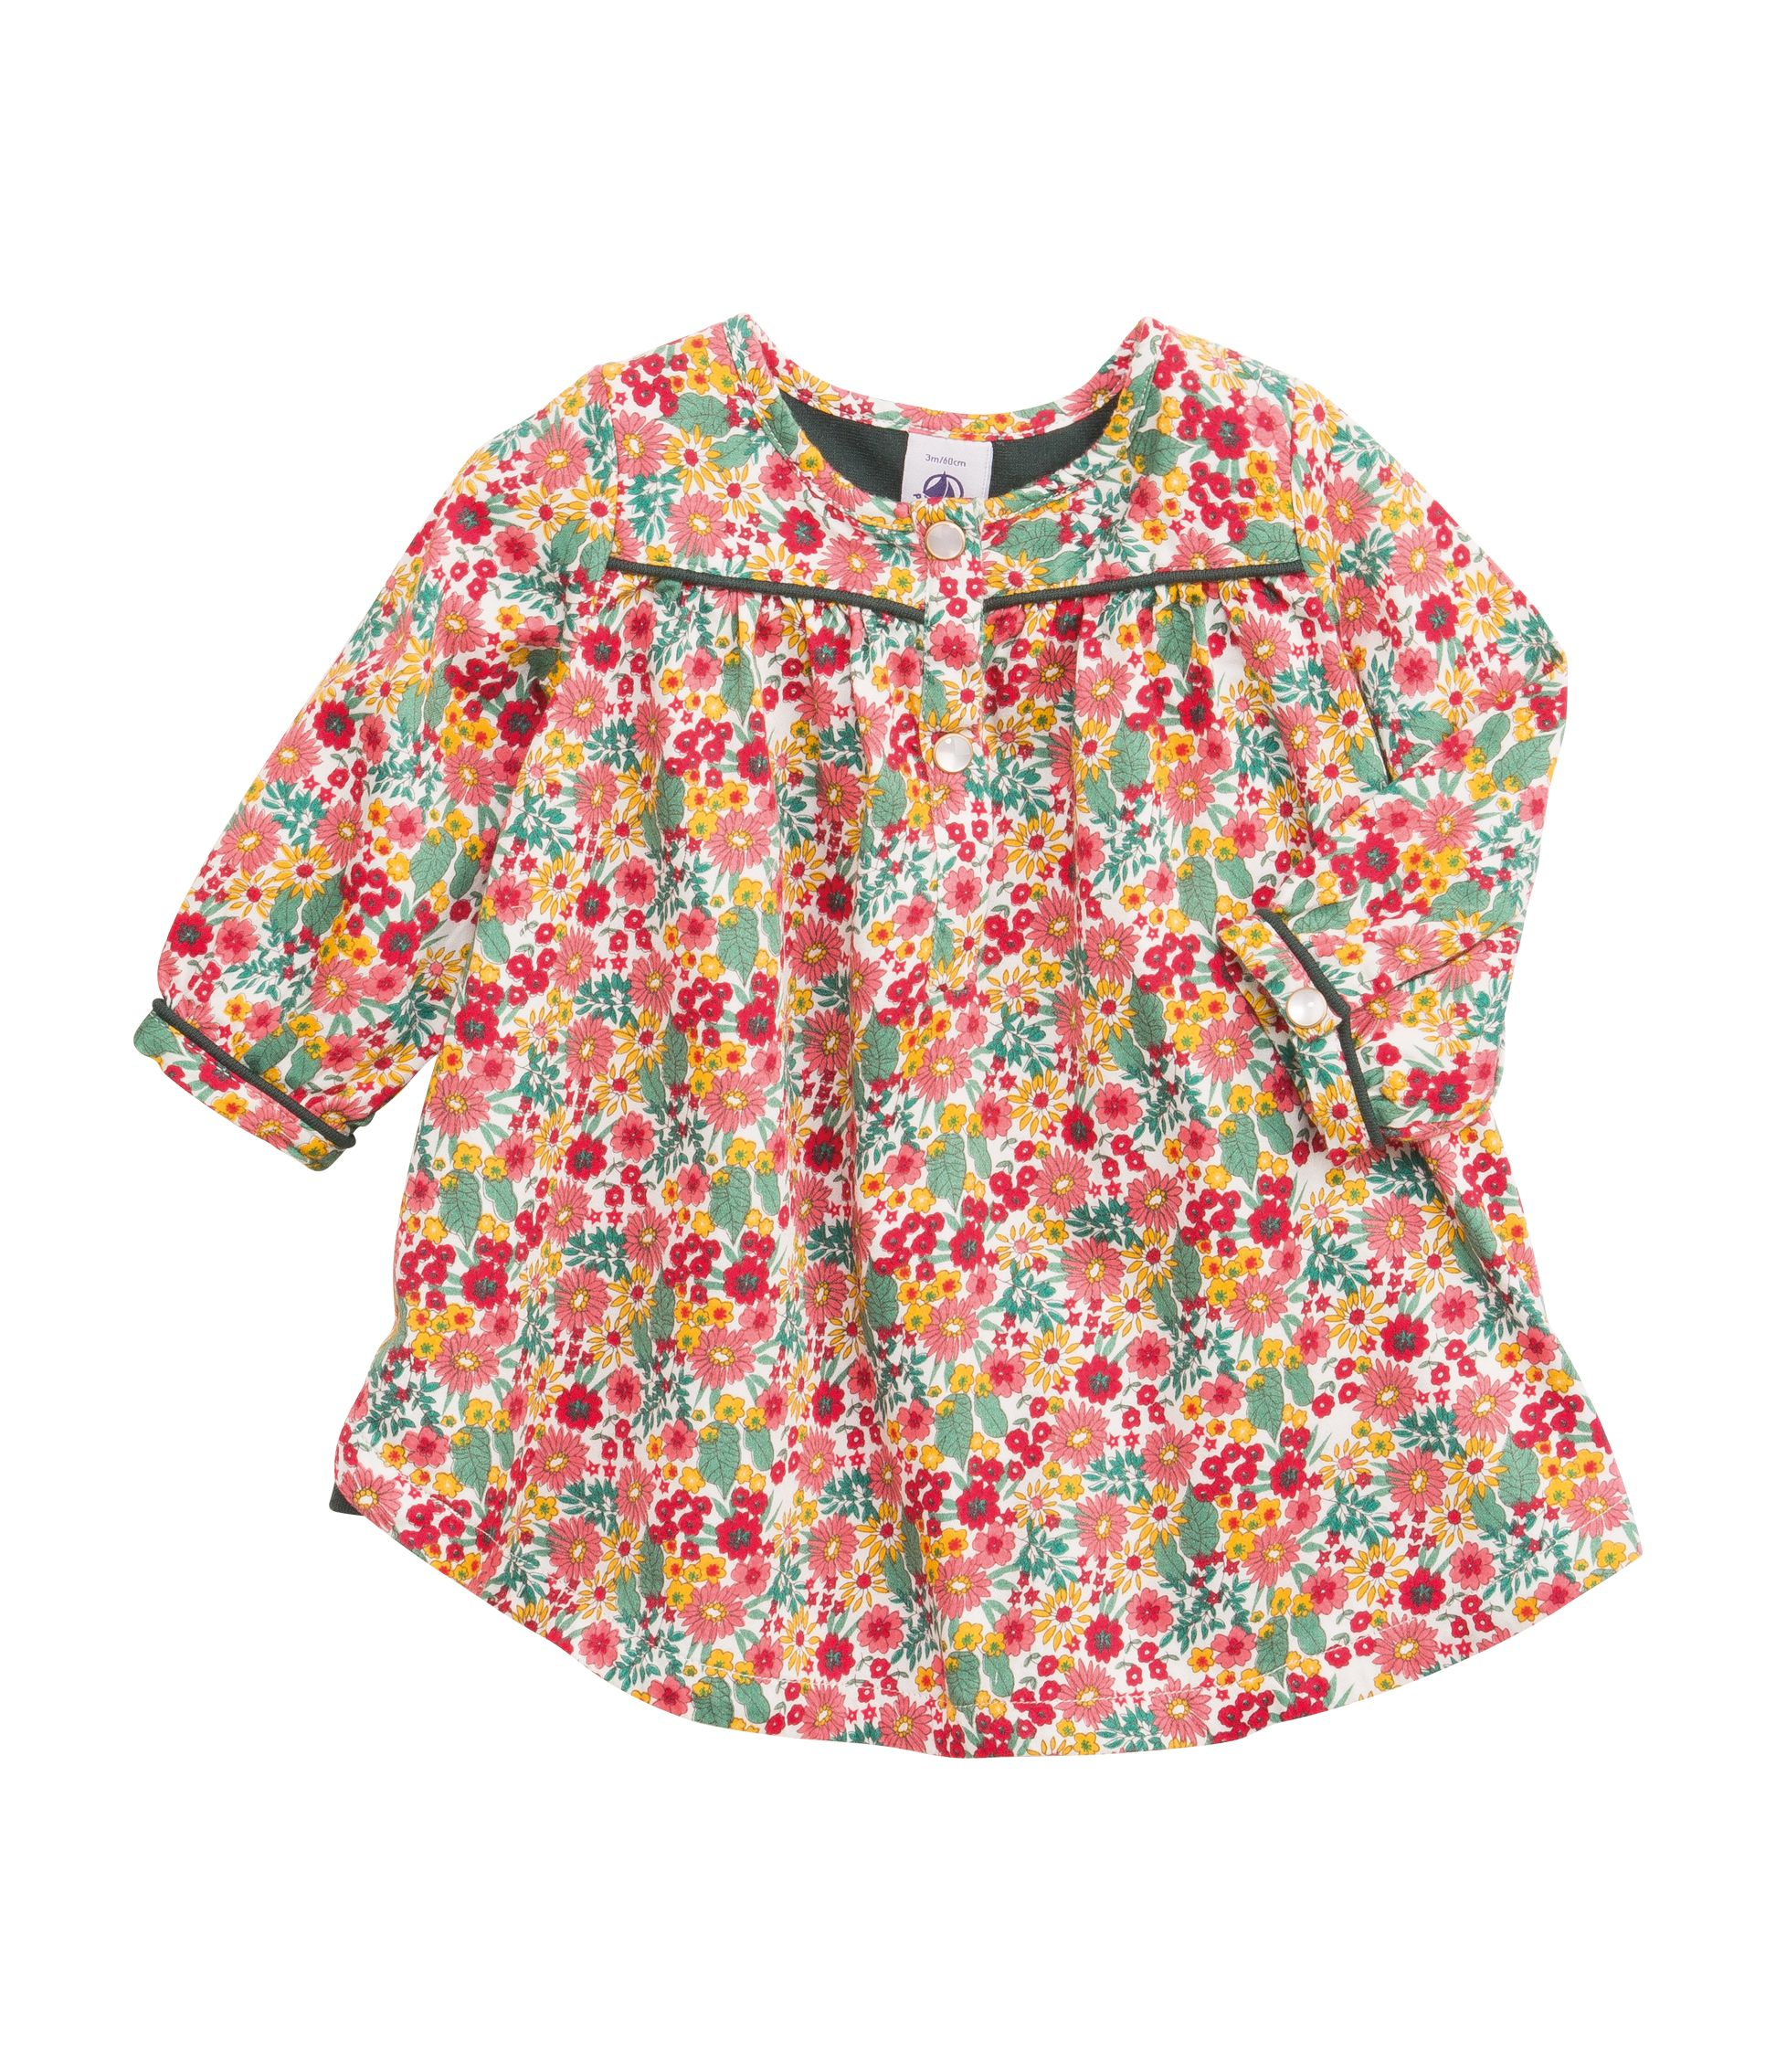 Baby girl`s blouse in flower print cotton satin